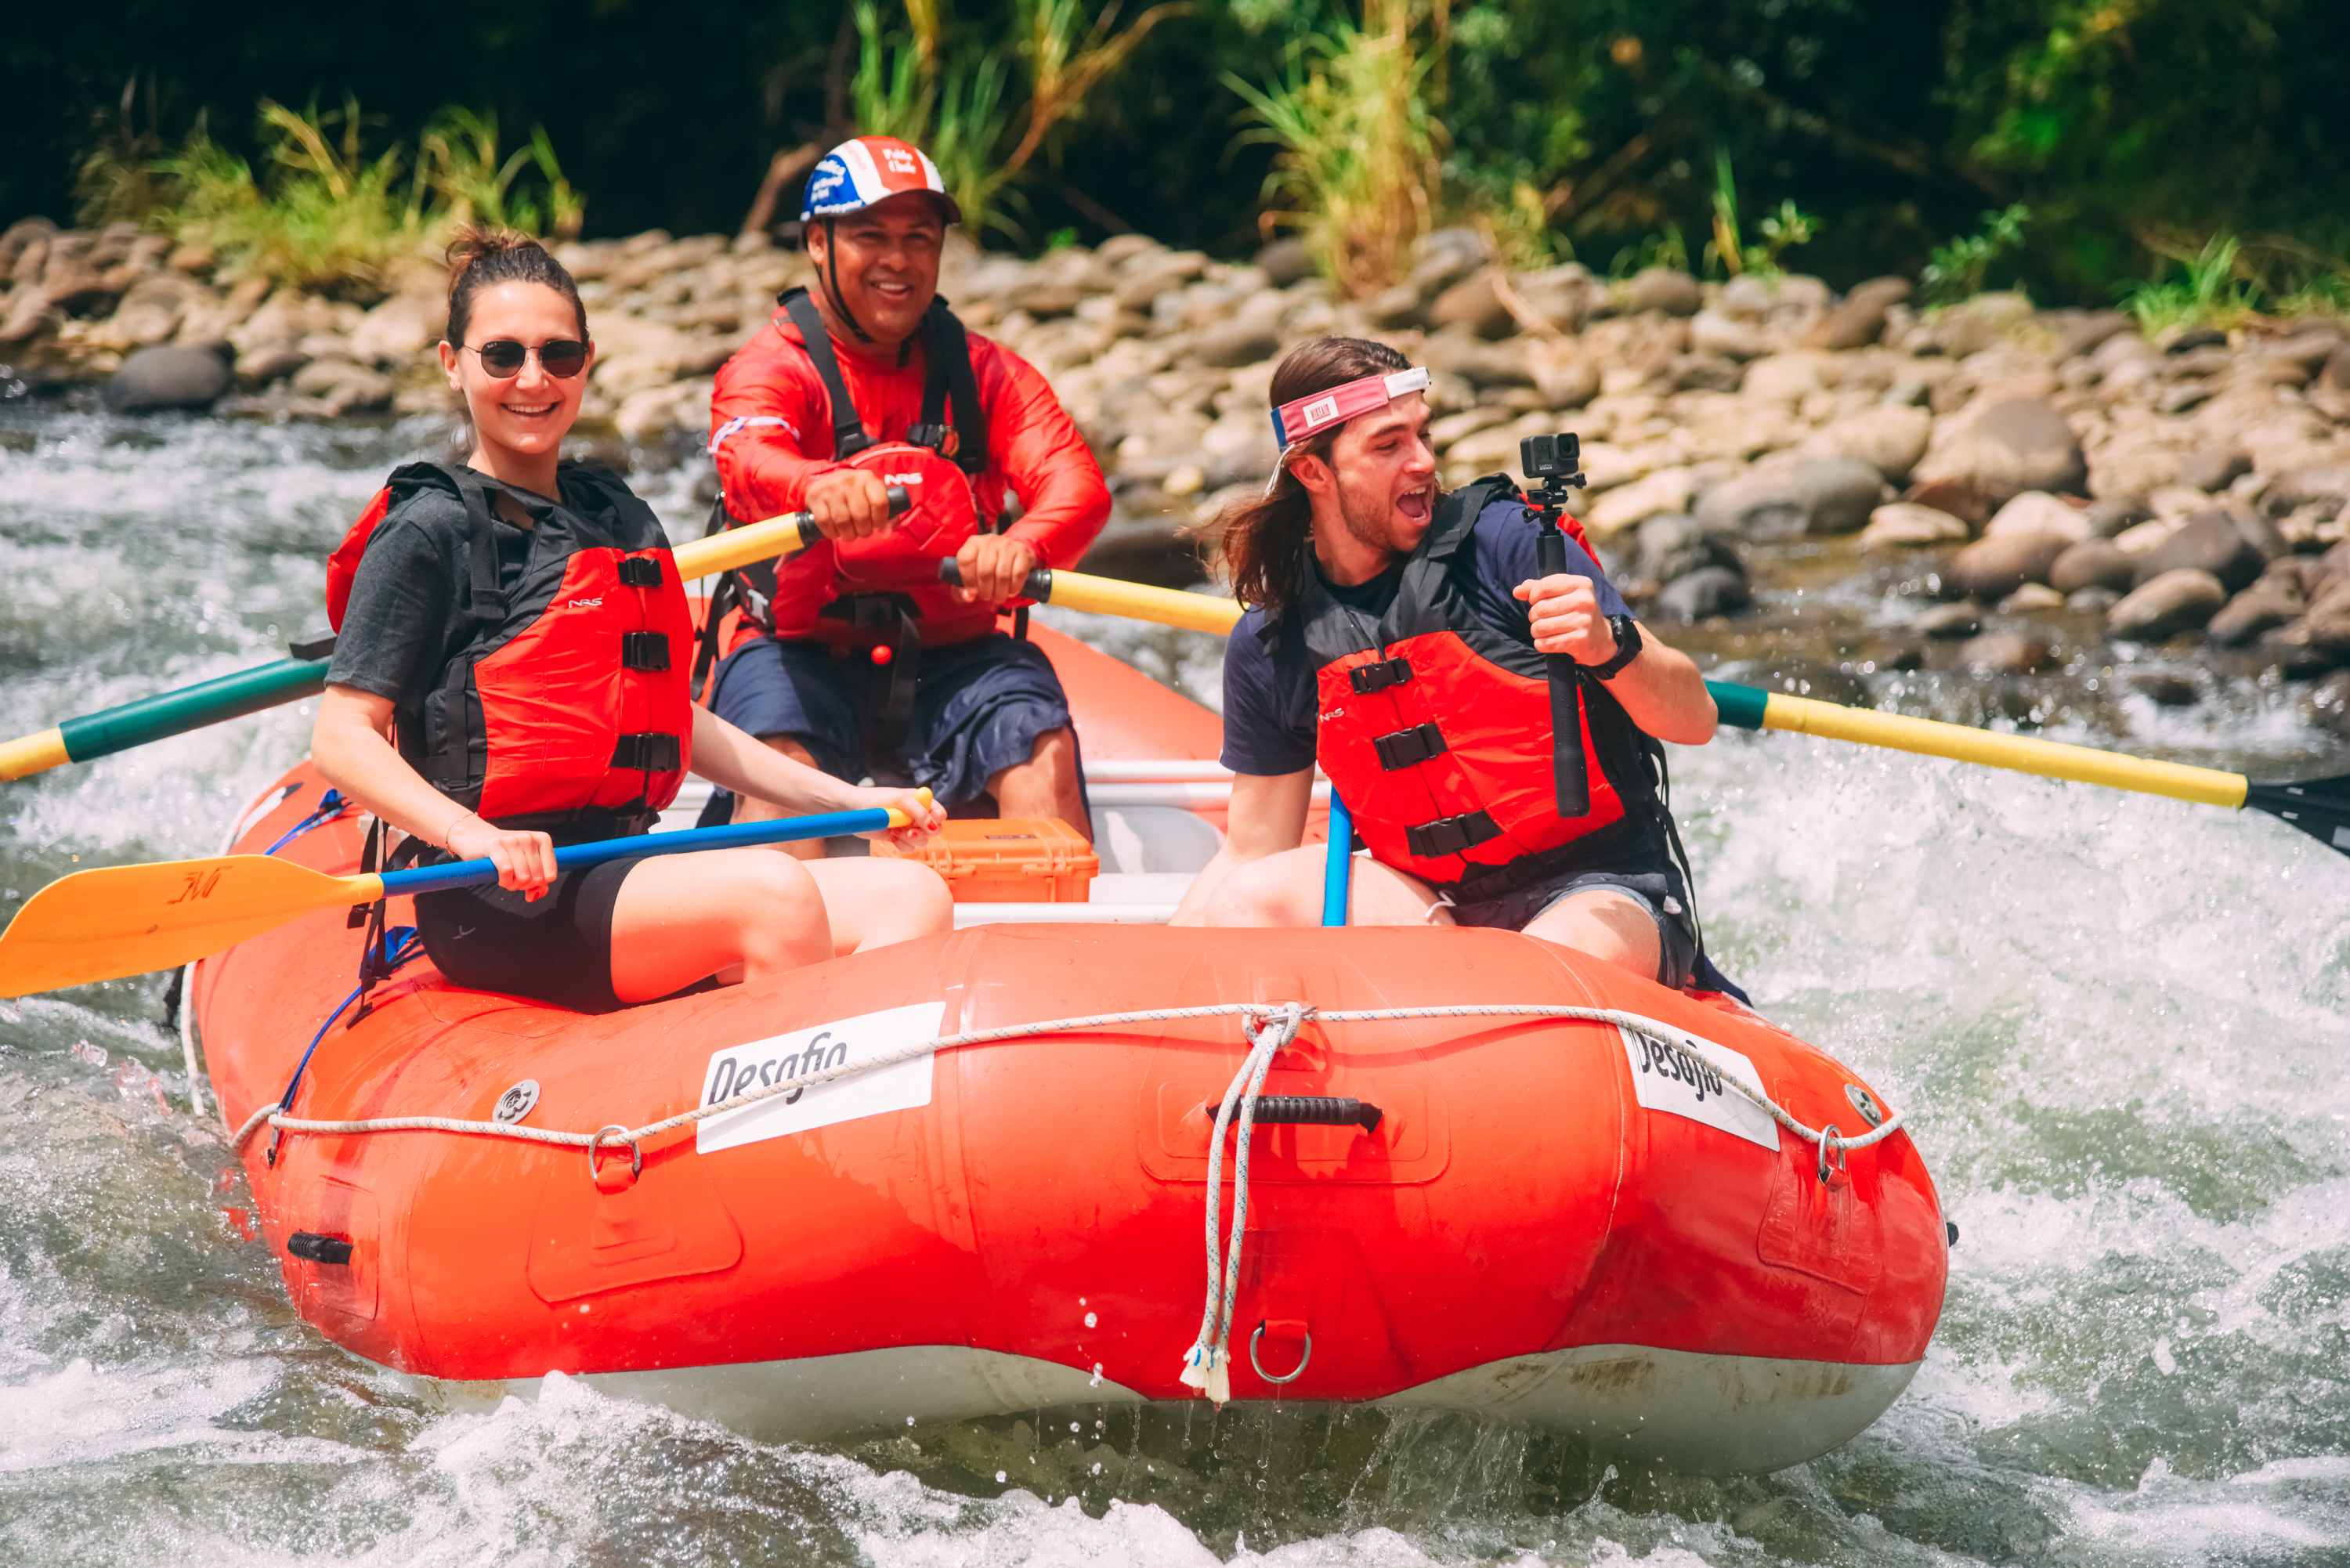 A great way to see nature - whitewater and wildlife Jungle Safari Float with Desafio.